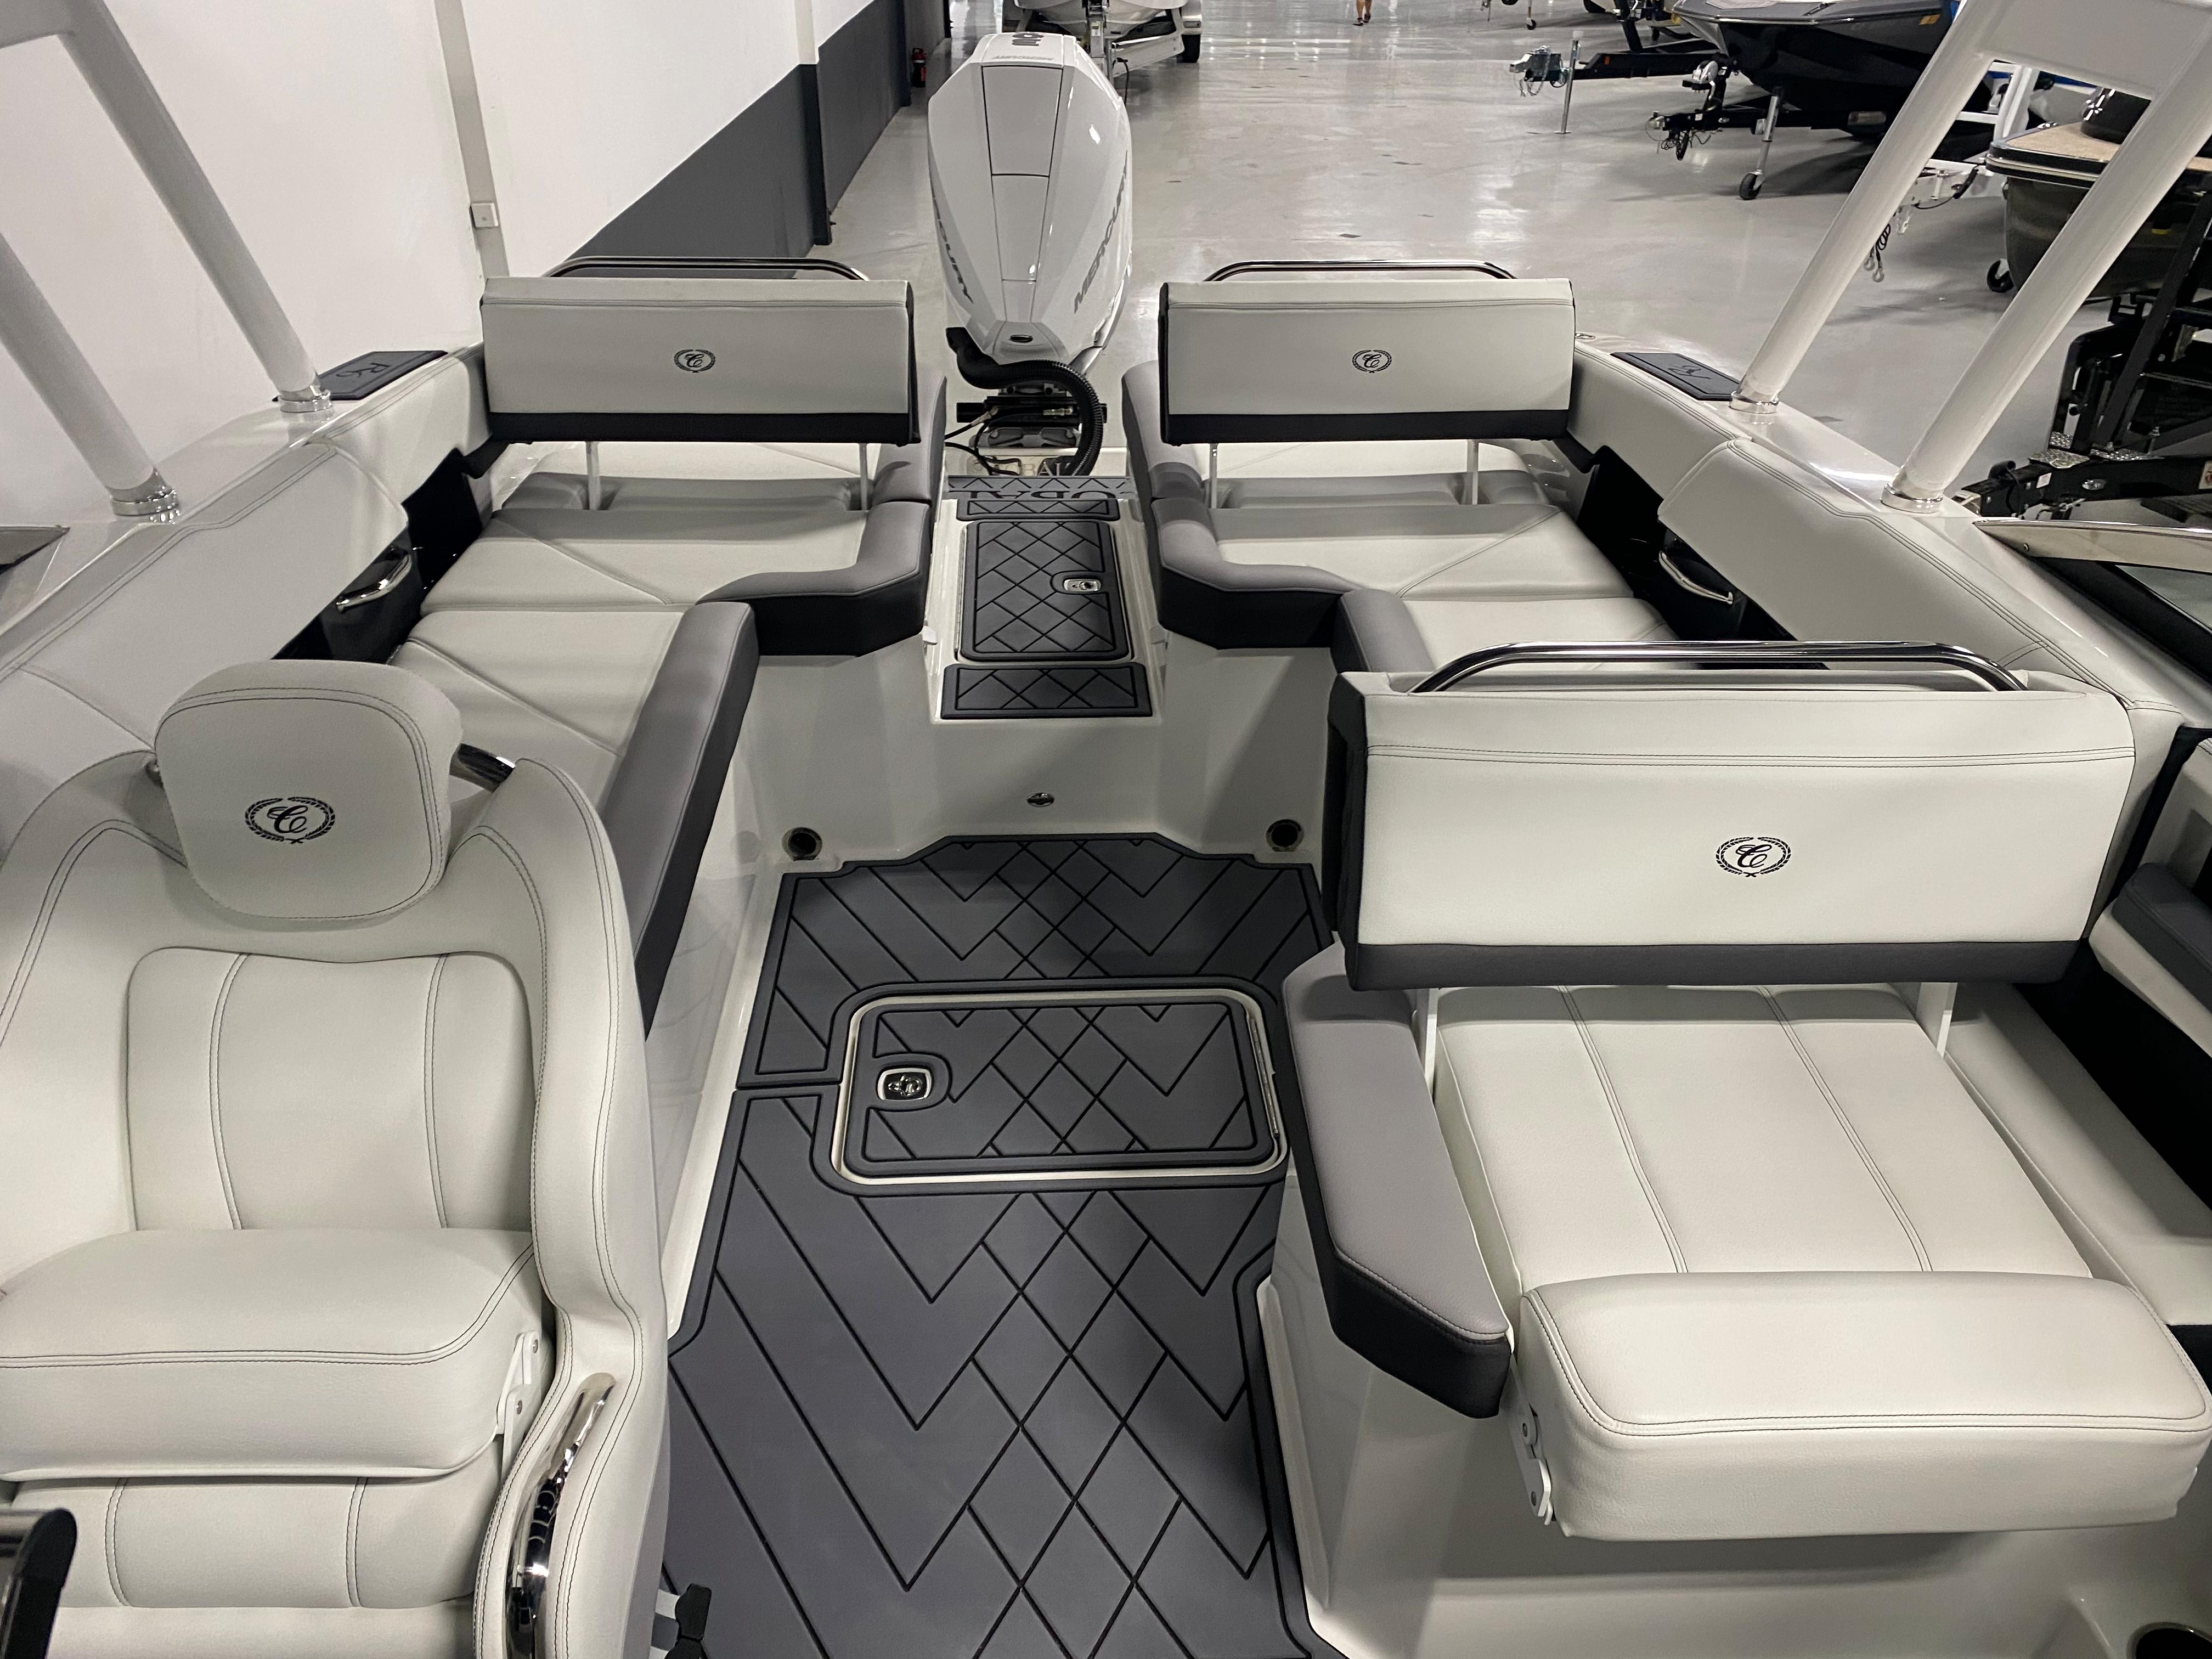 2022 Cobalt R6 Outboard #C6002G inventory image at Sun Country Inland in Irvine